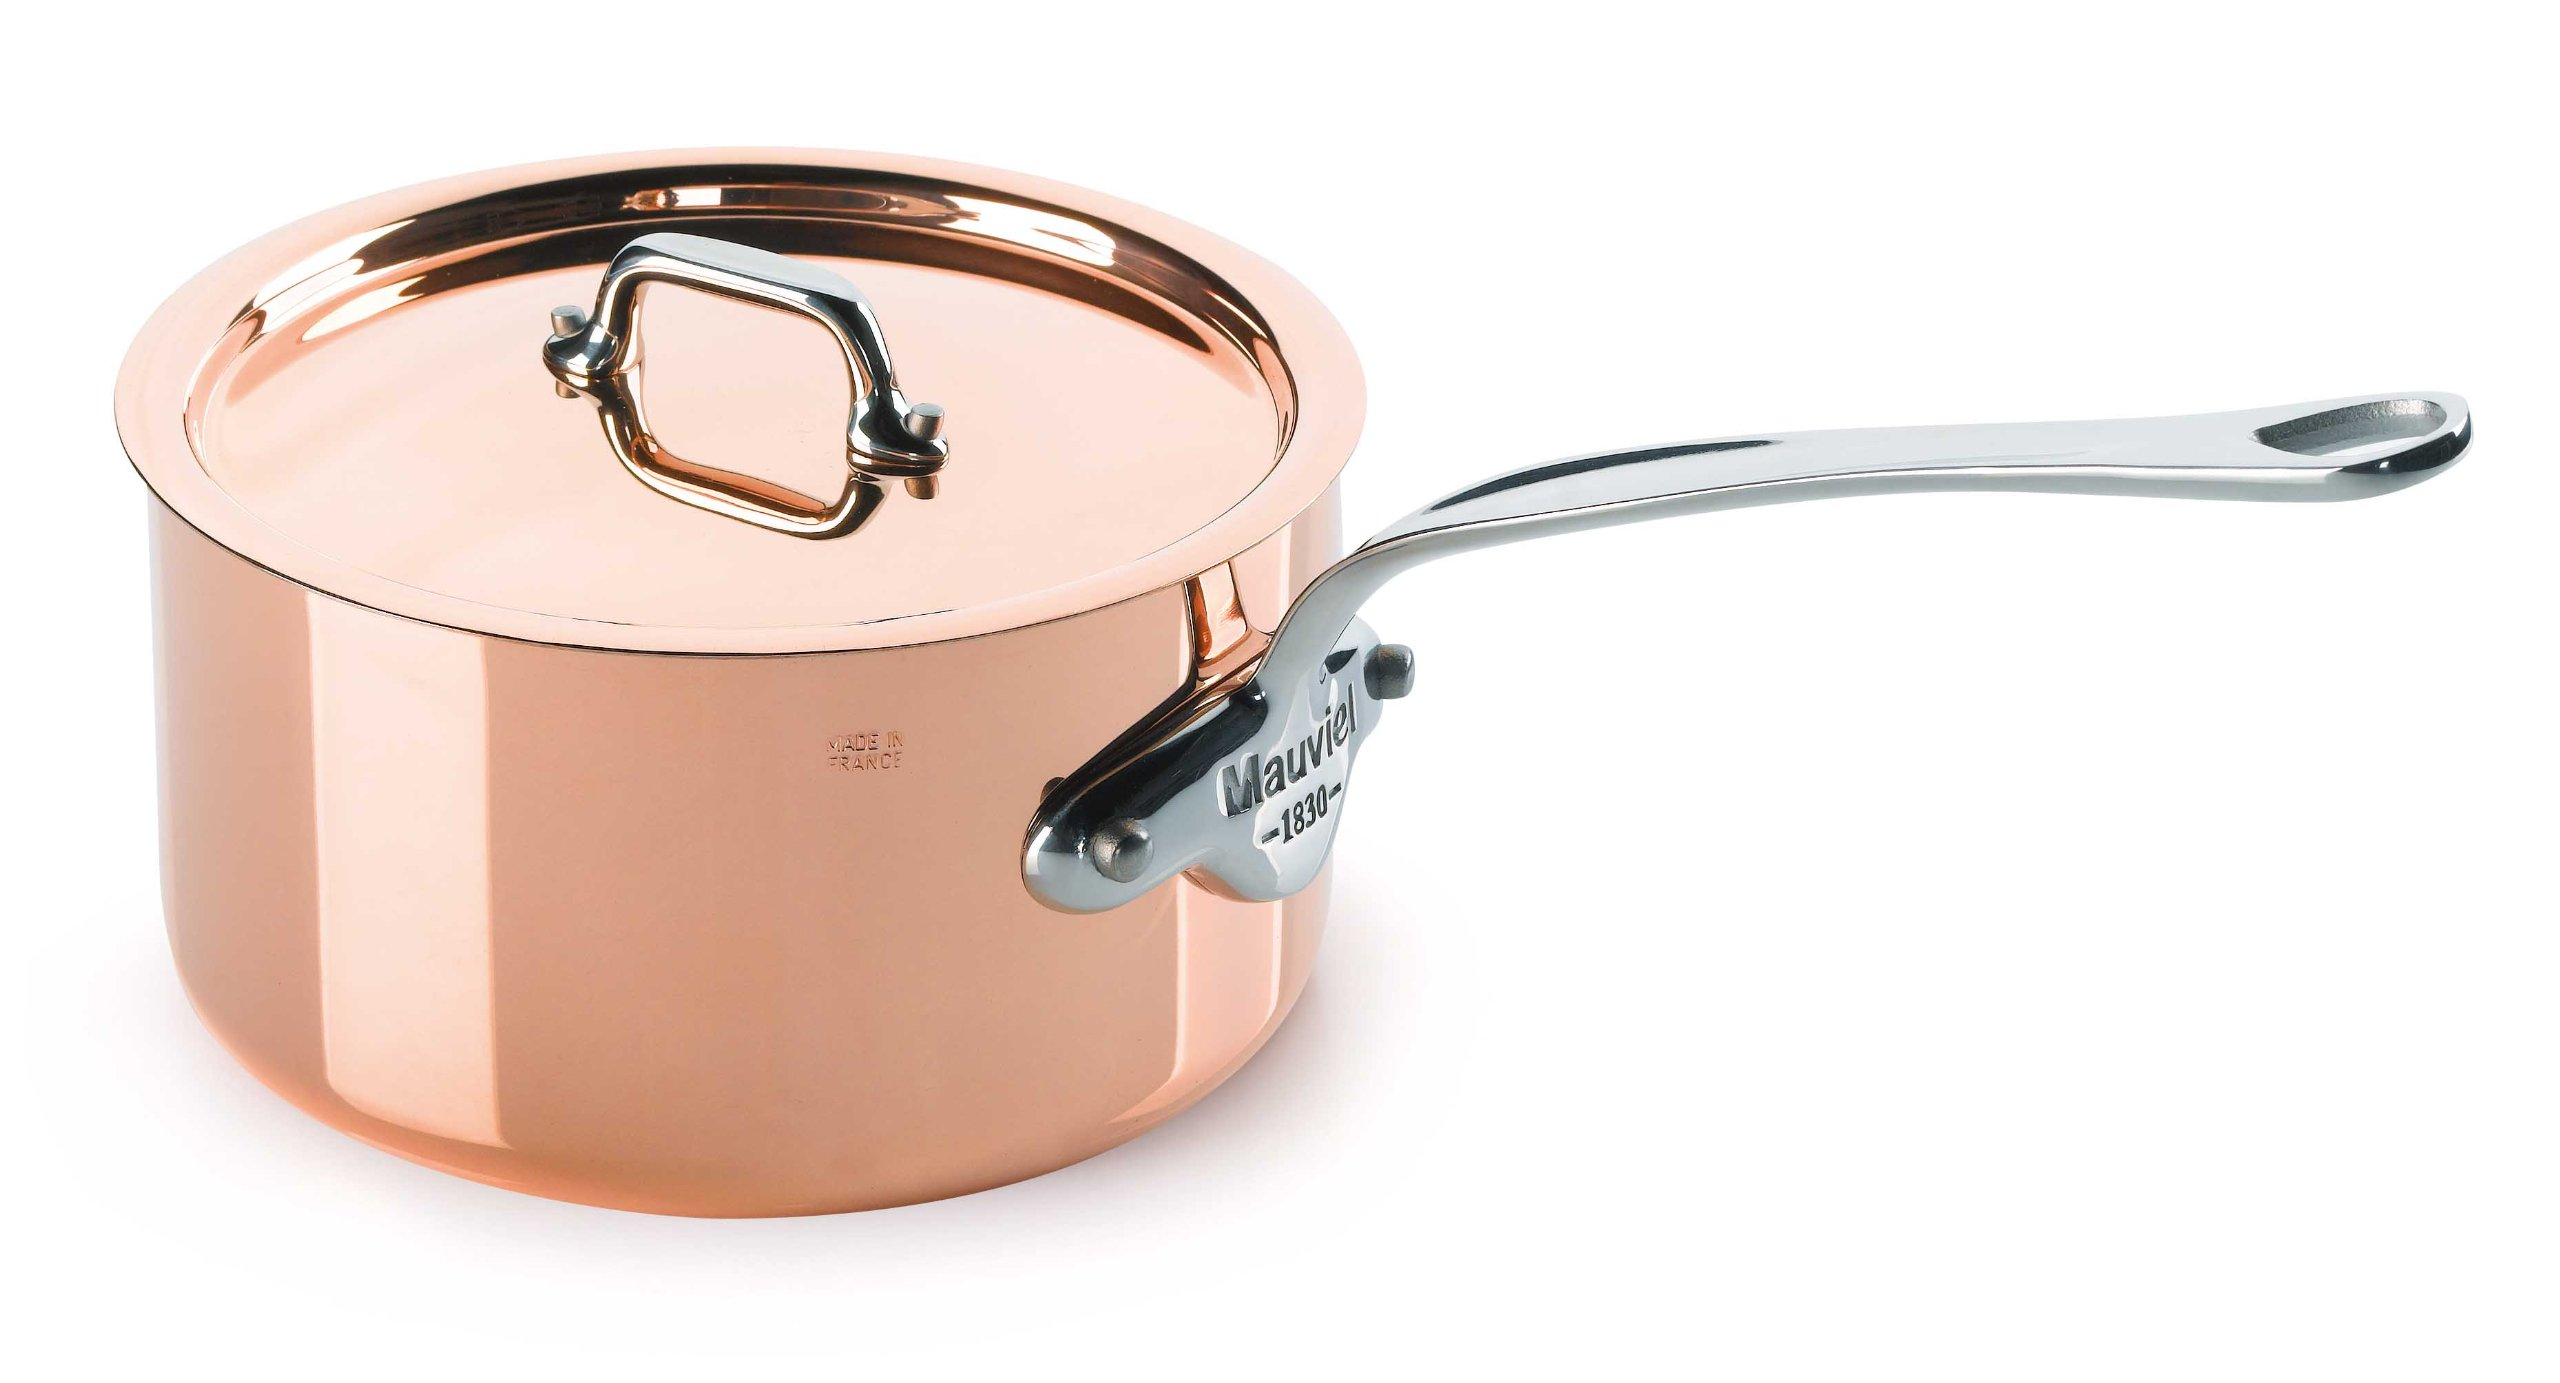 Mauviel Made In France M'Heritage Copper M150S 6110.13 0.9-Quart Saucepan with Lid, Cast Stainless Steel Handles.